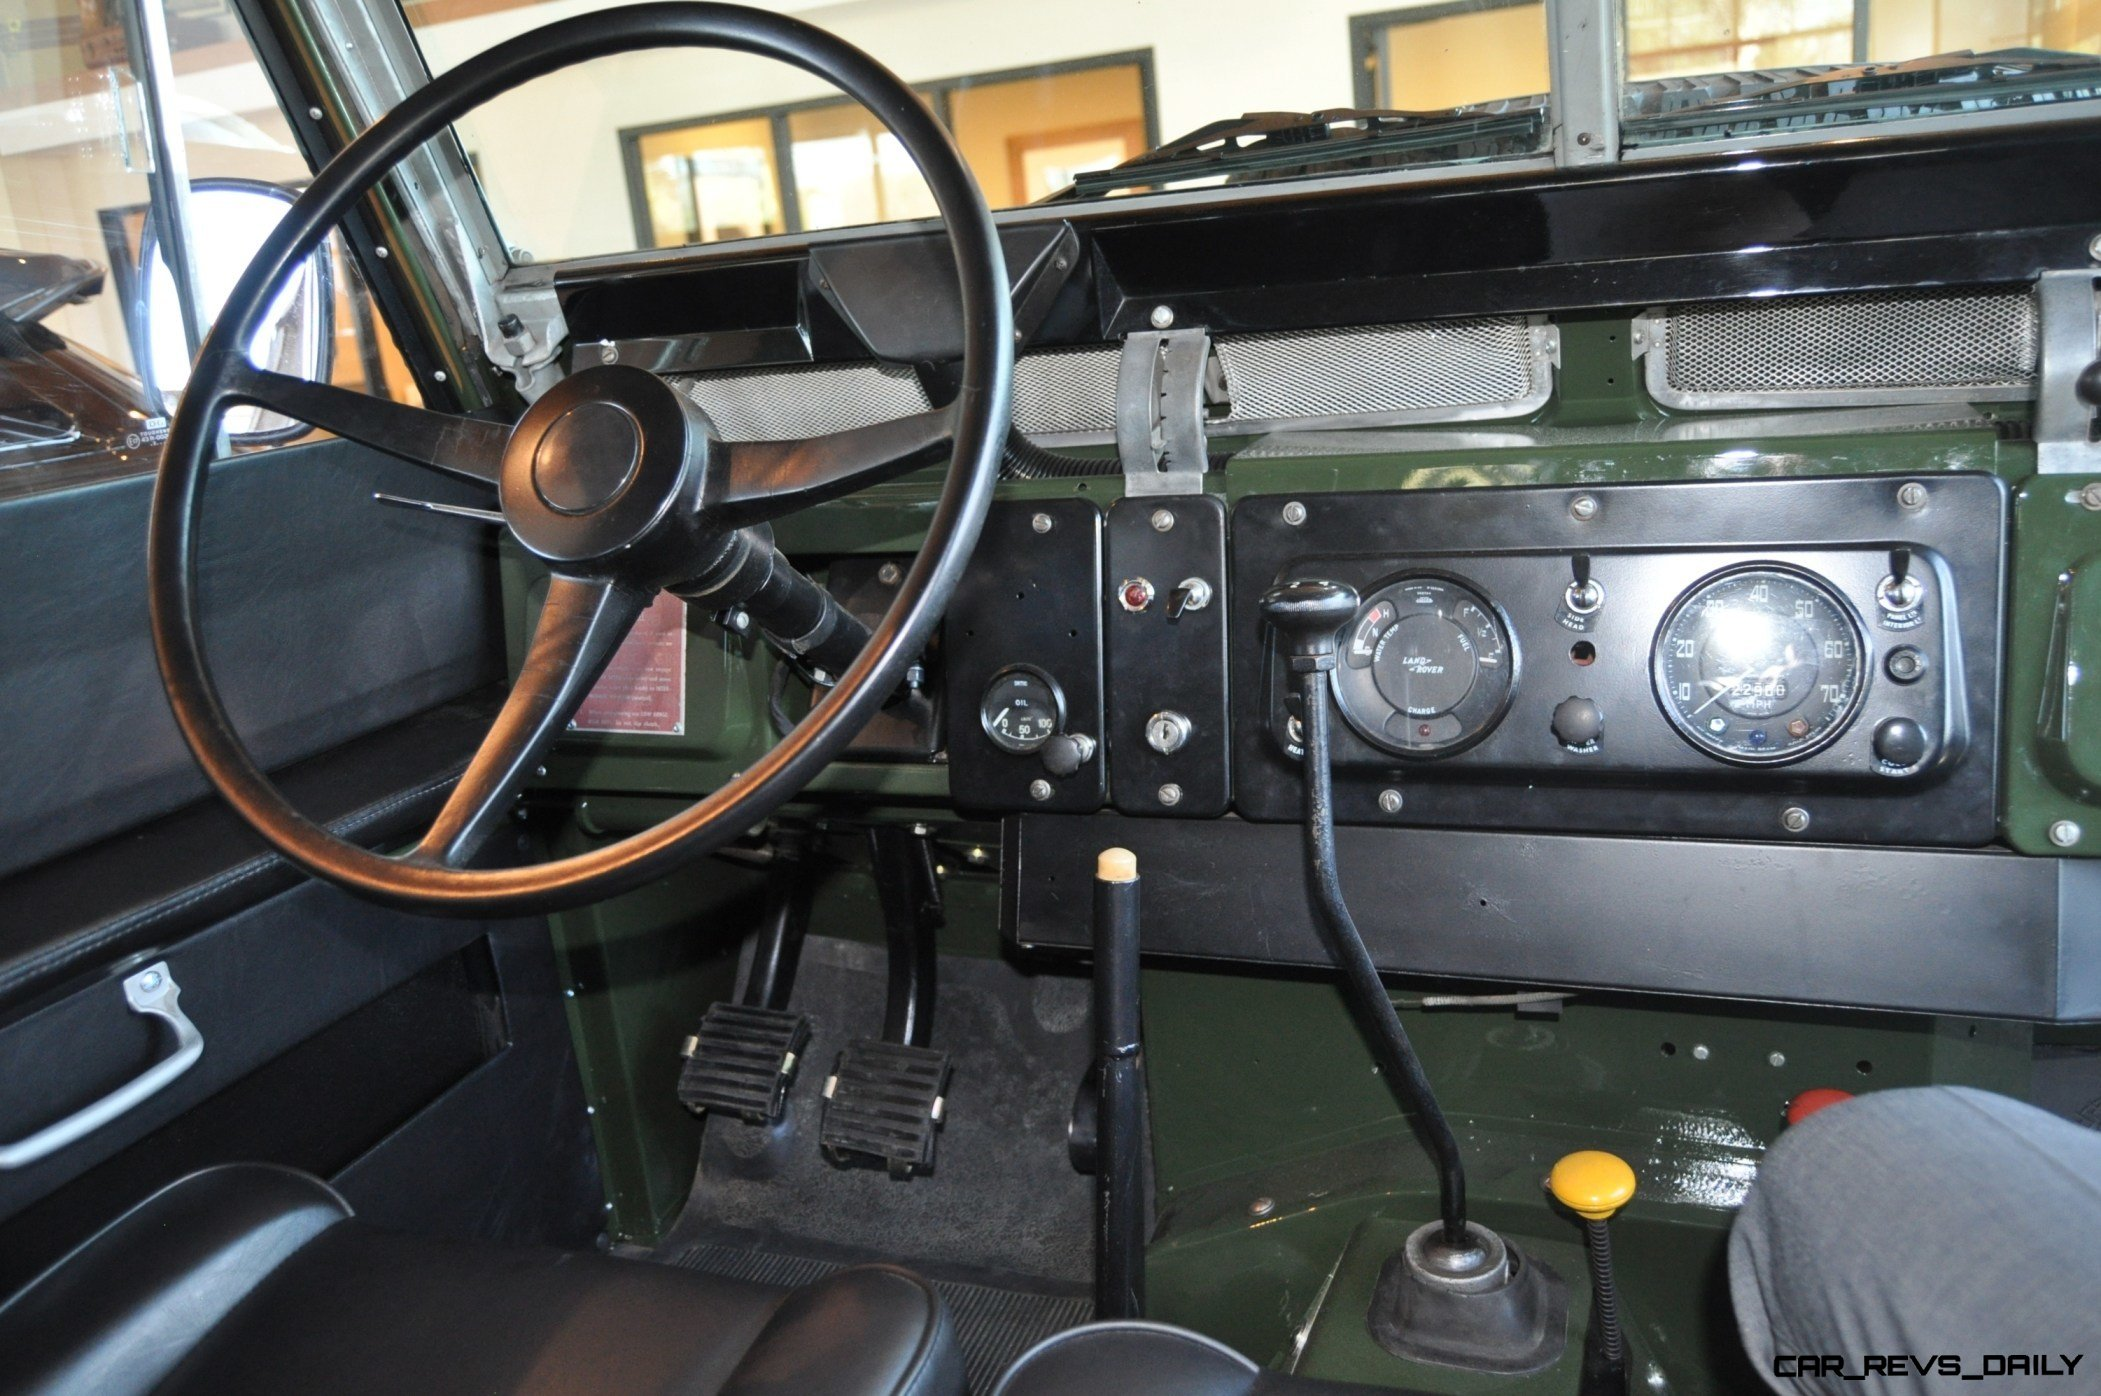 Video Walk around and s Near Mint 1969 Land Rover Series II